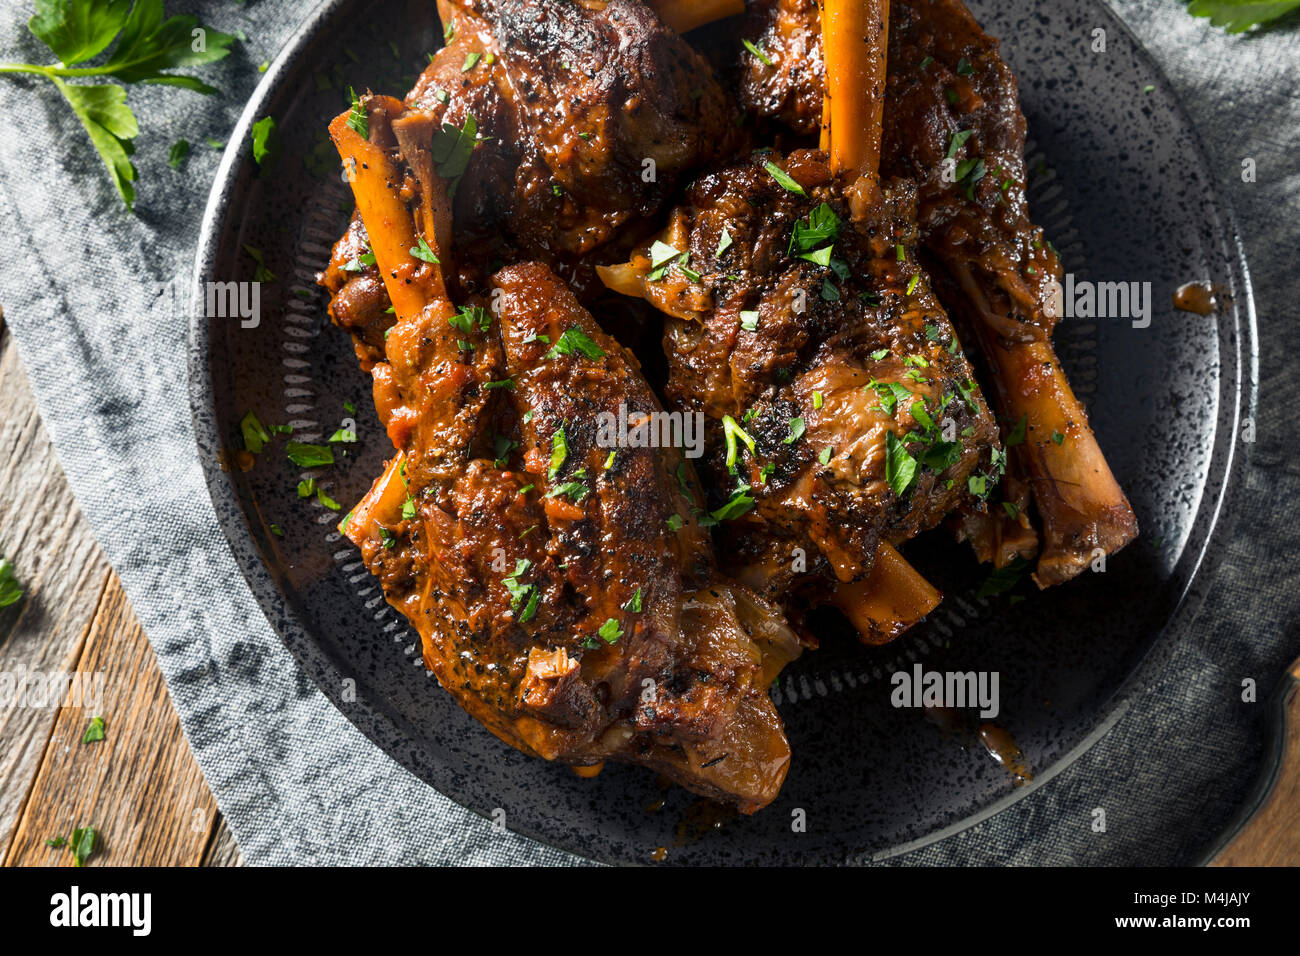 Homemade Braised Lamb Shanks with Sauce and Herbs - Stock Image